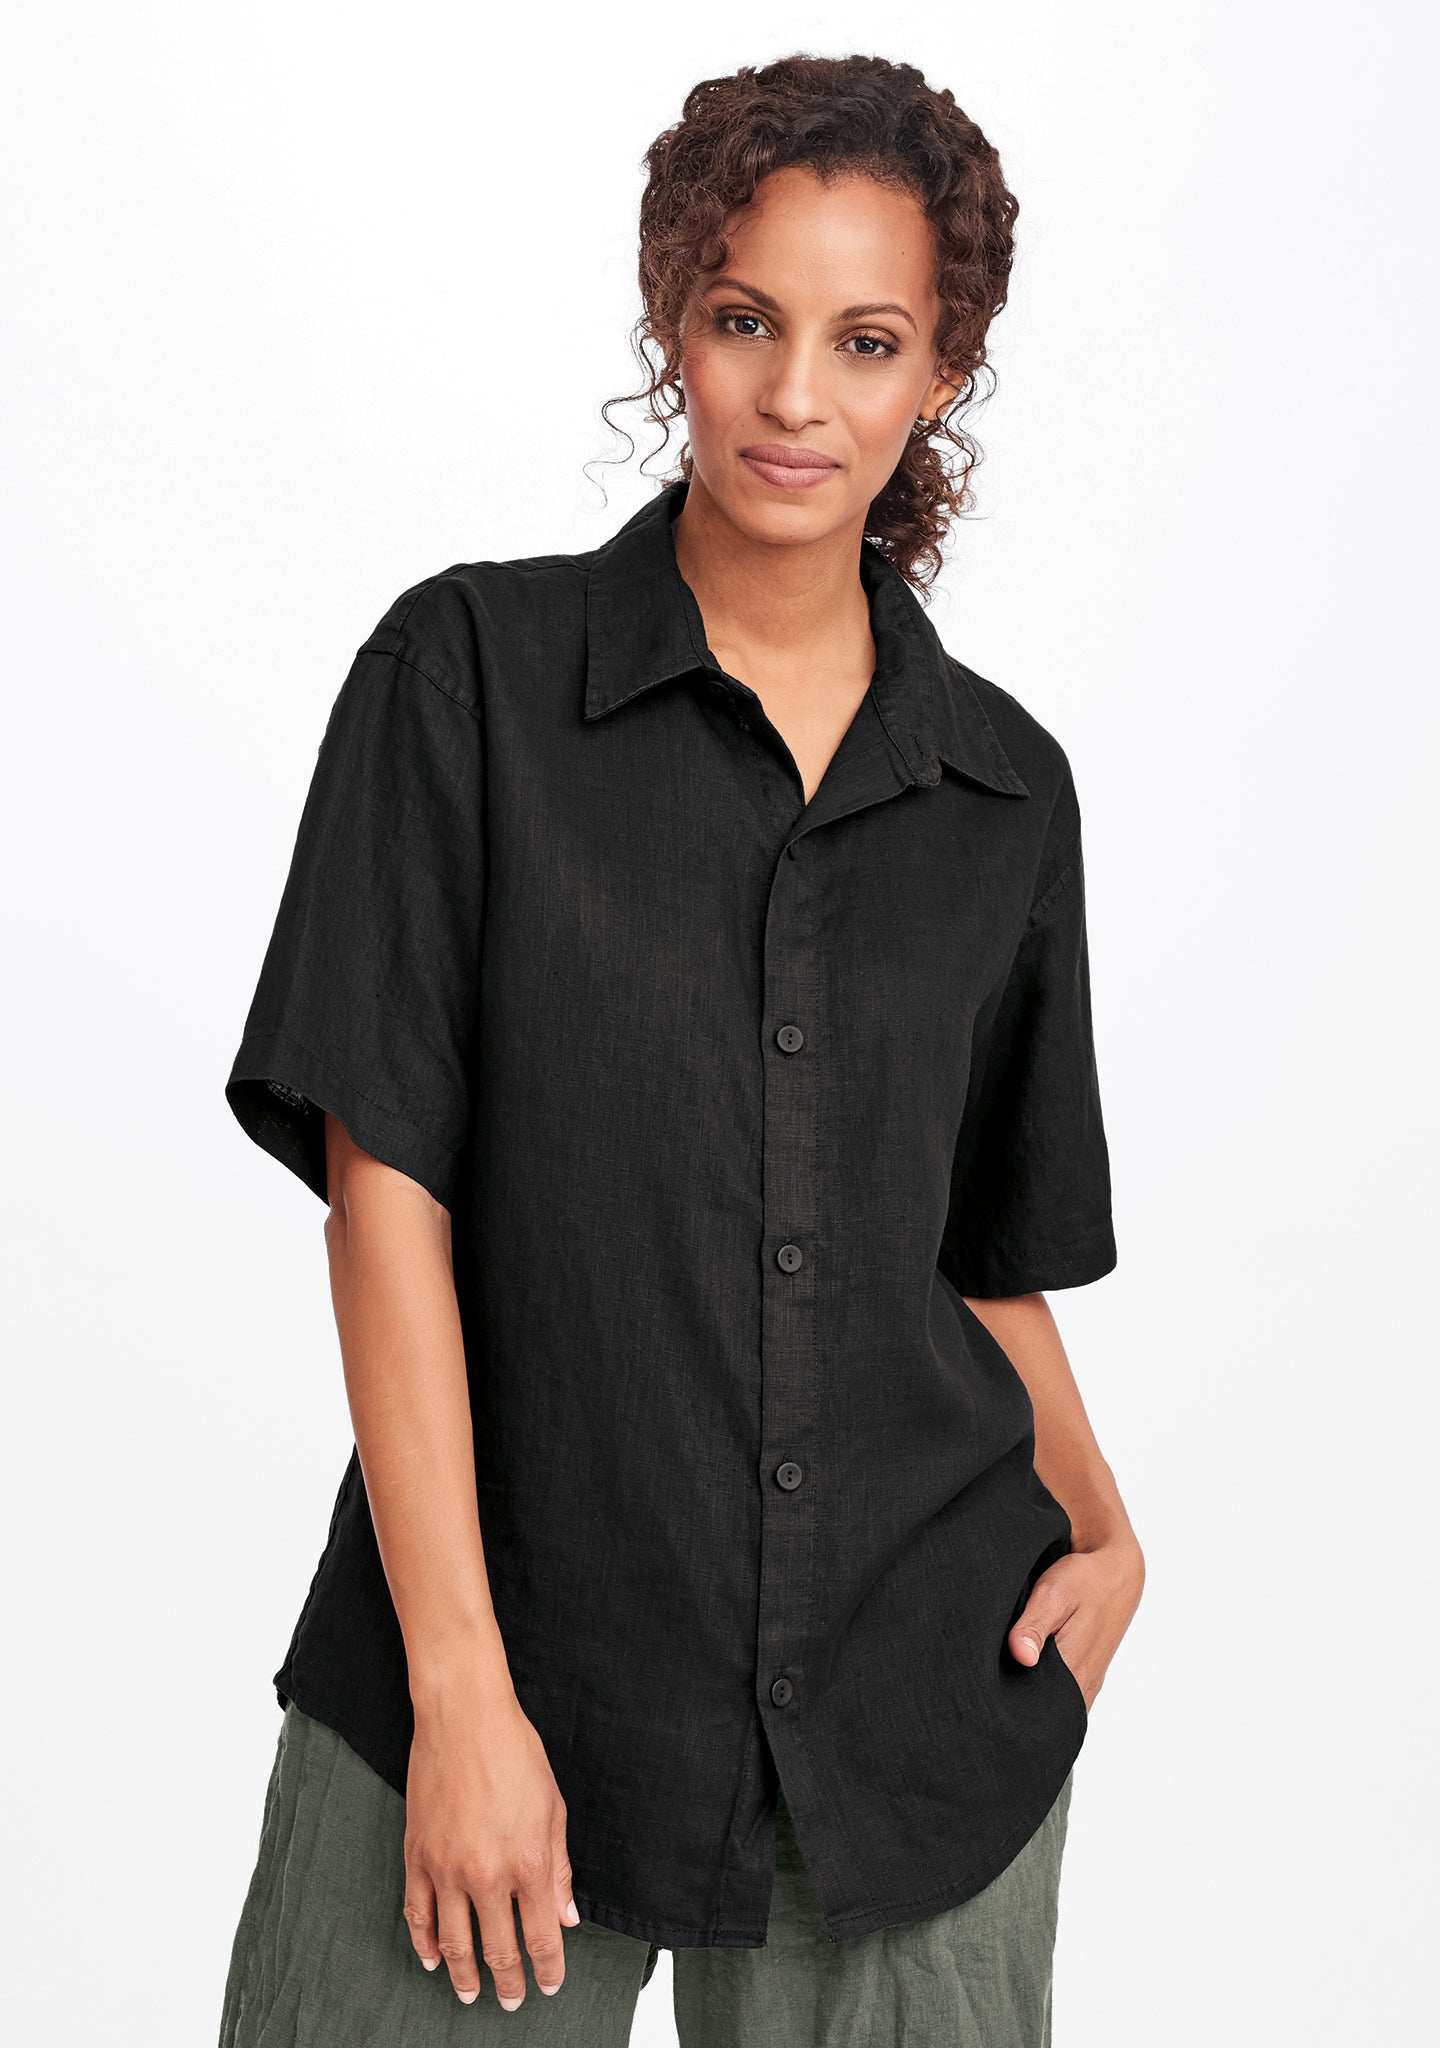 mens short sleeve shirt black